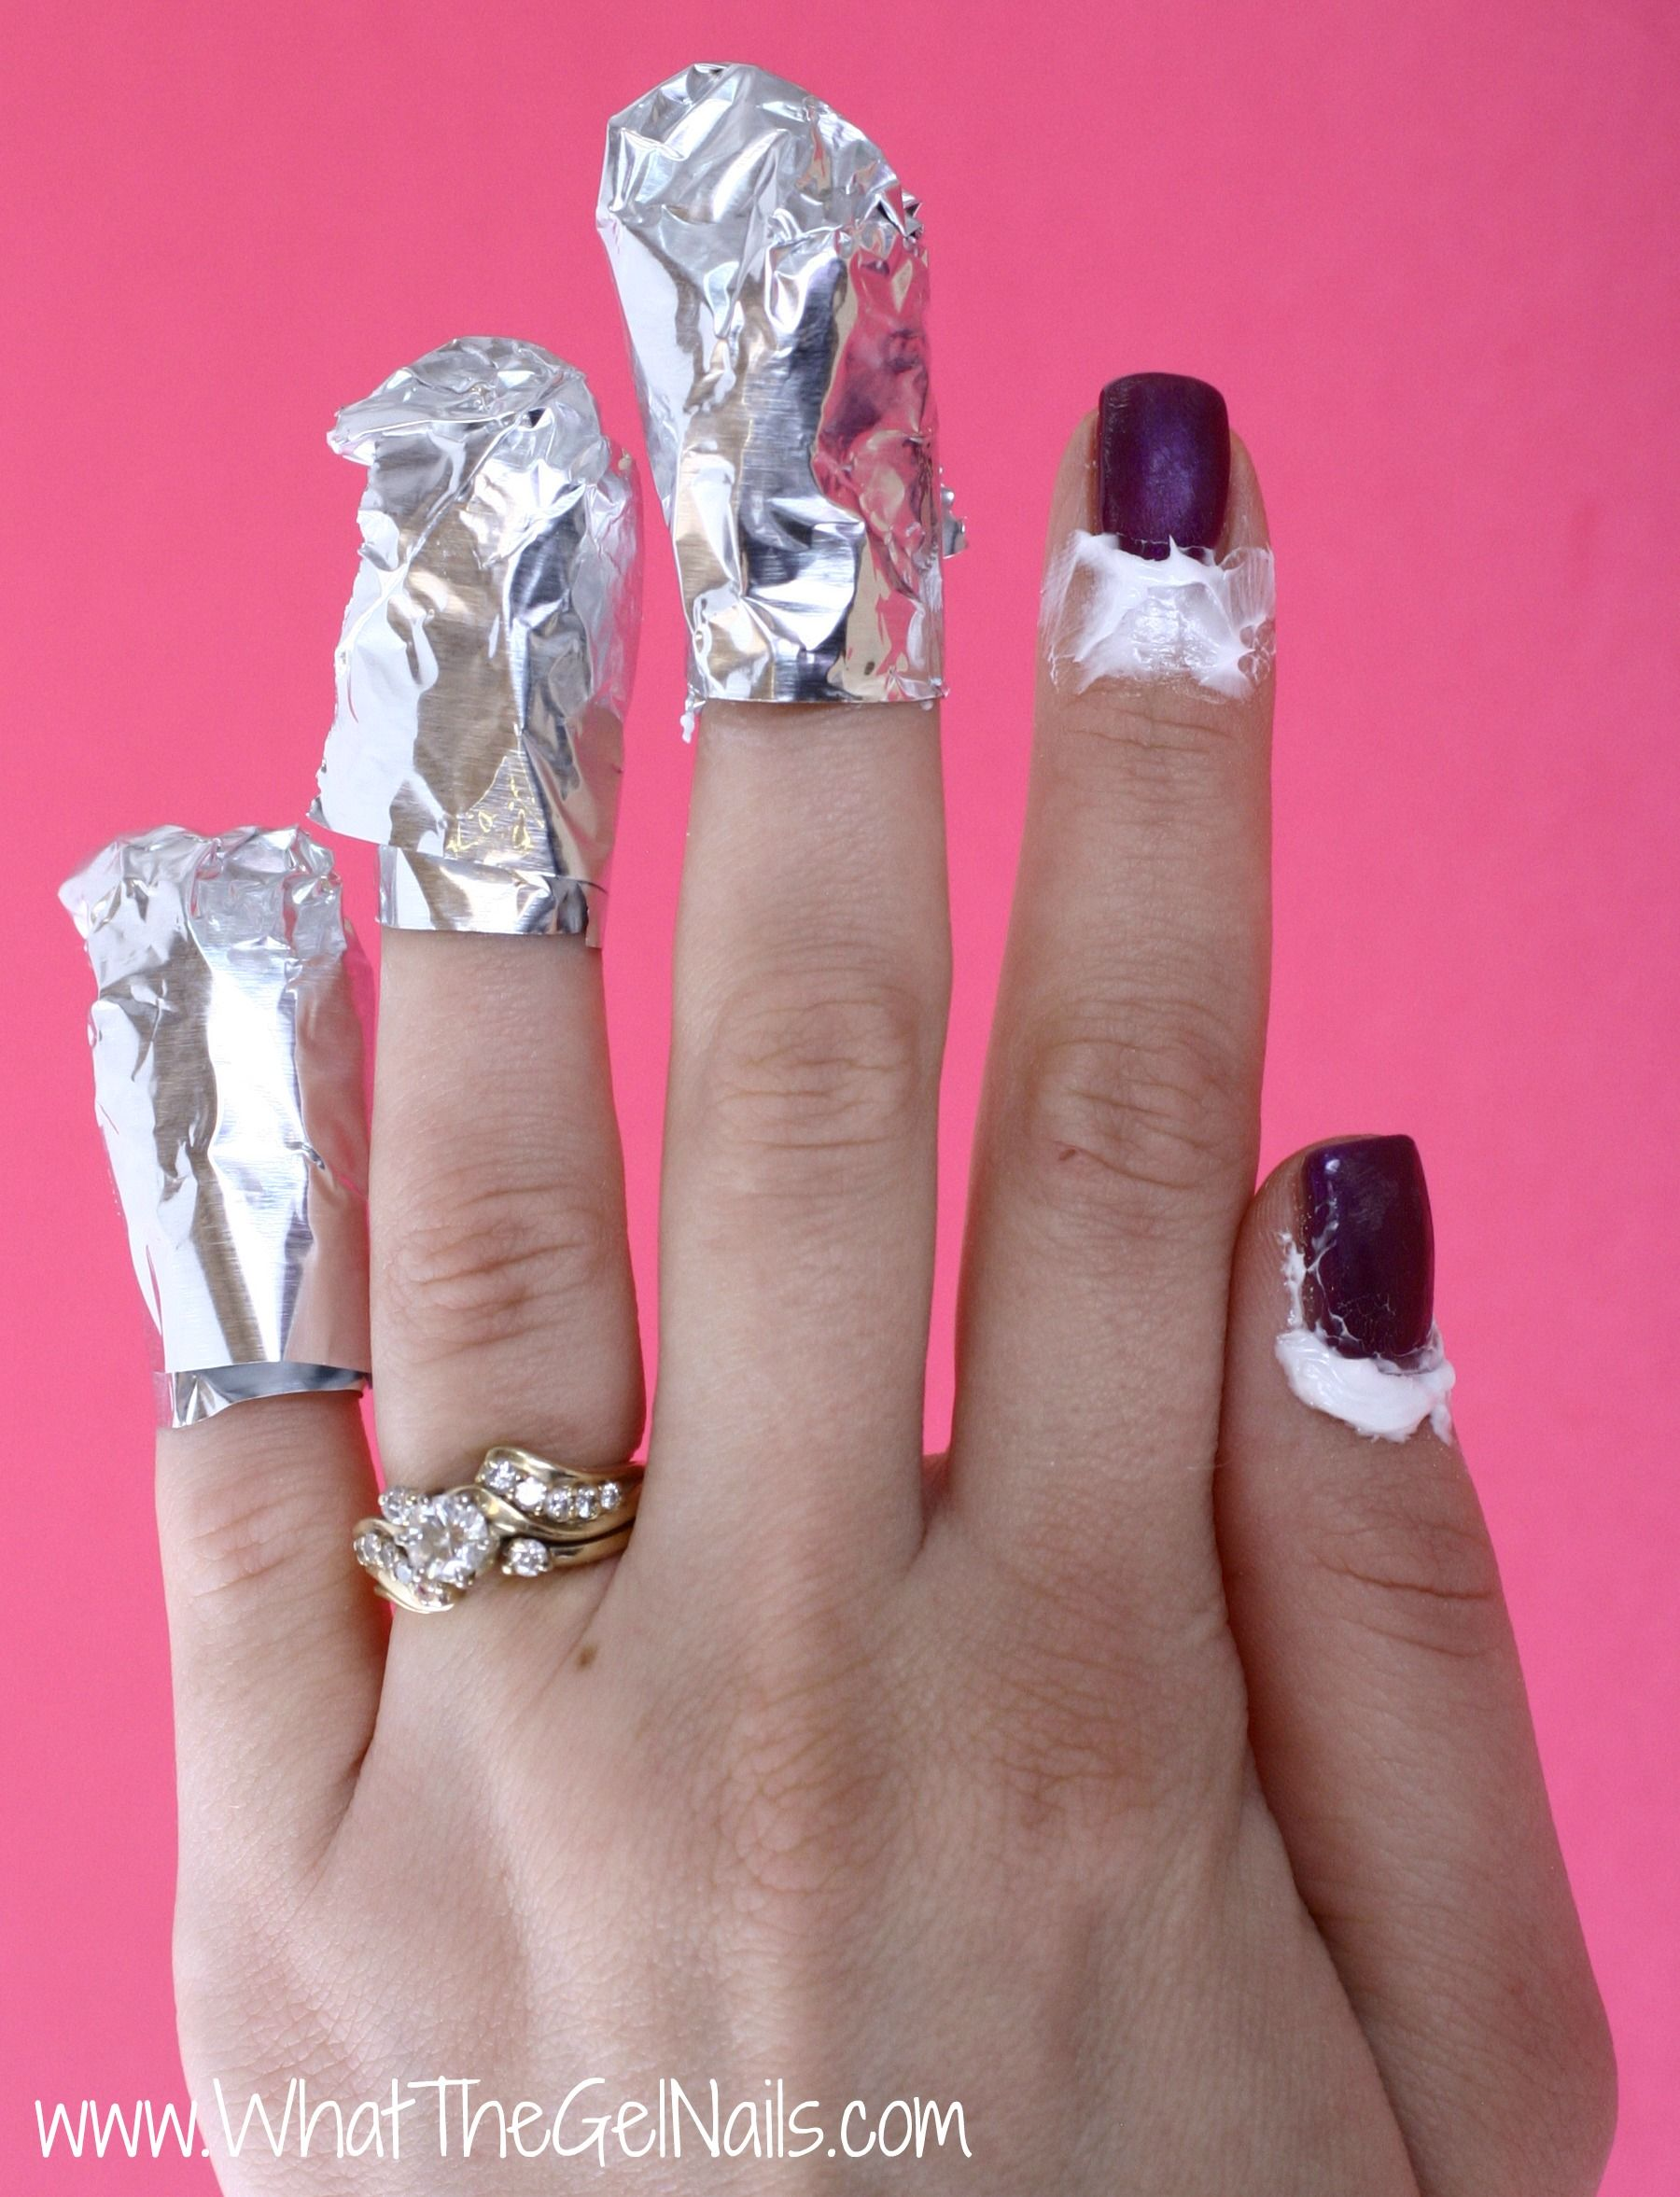 How To Remove Bio Gel Nails Without Acetone   Splendid Wedding Company